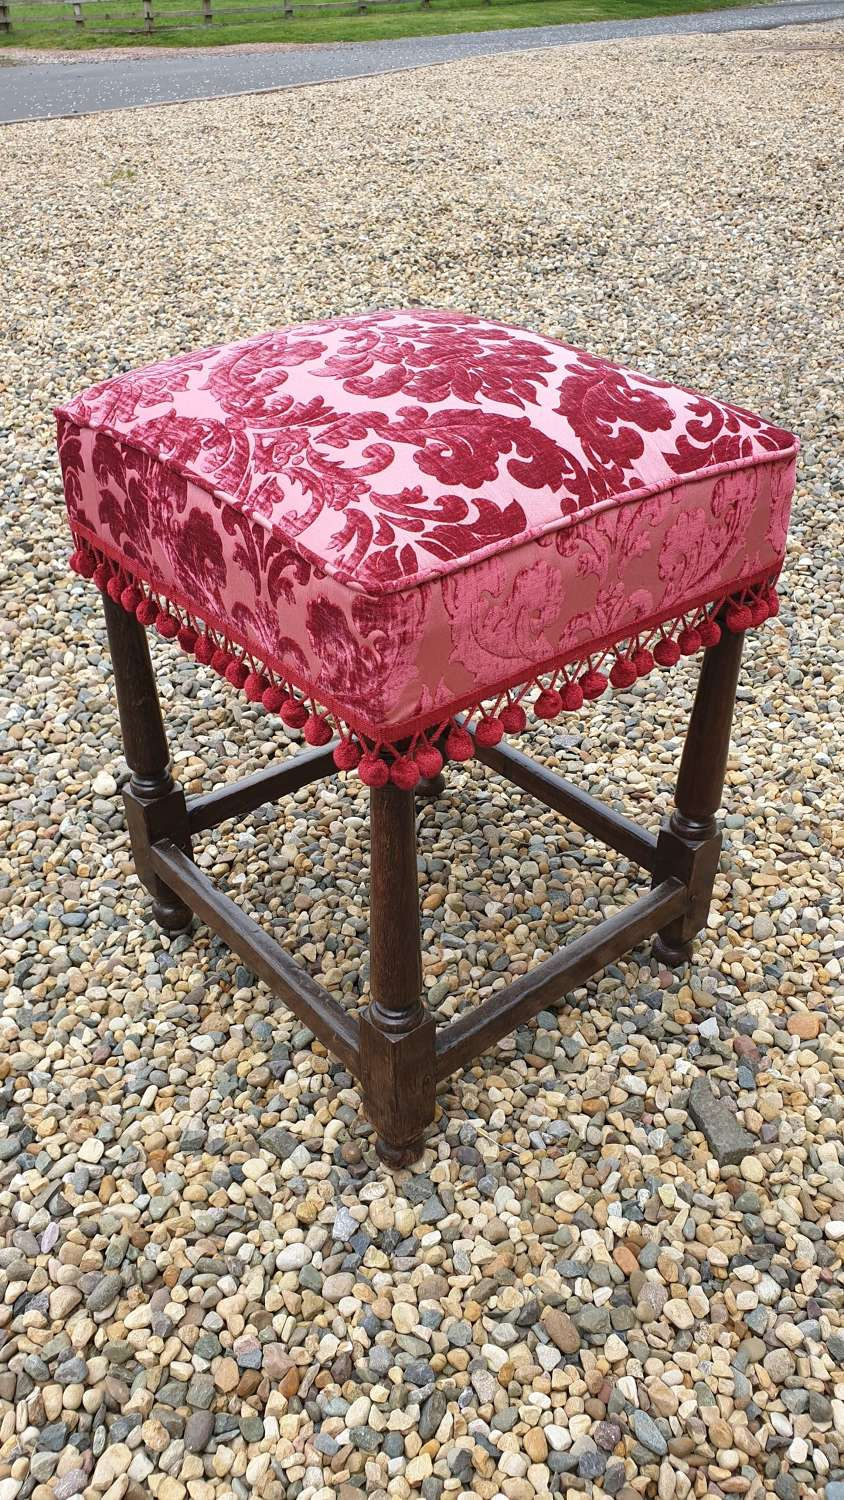 Late 17th century Upholstered Oak Stool